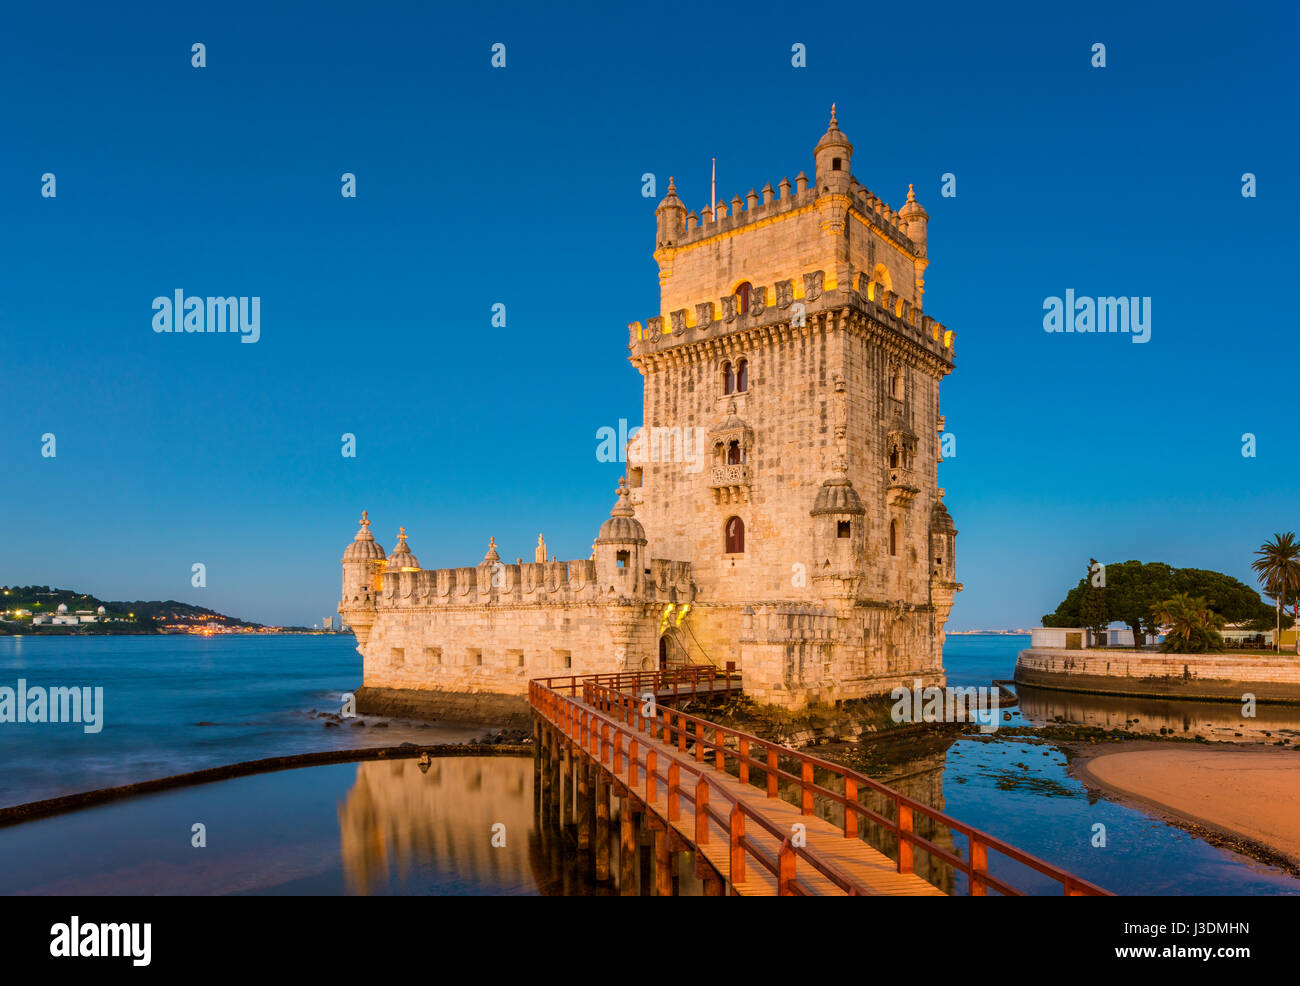 16th Century Belem Tower at the Tagus River in Lisbon, Portugal at sunrise - Stock Image